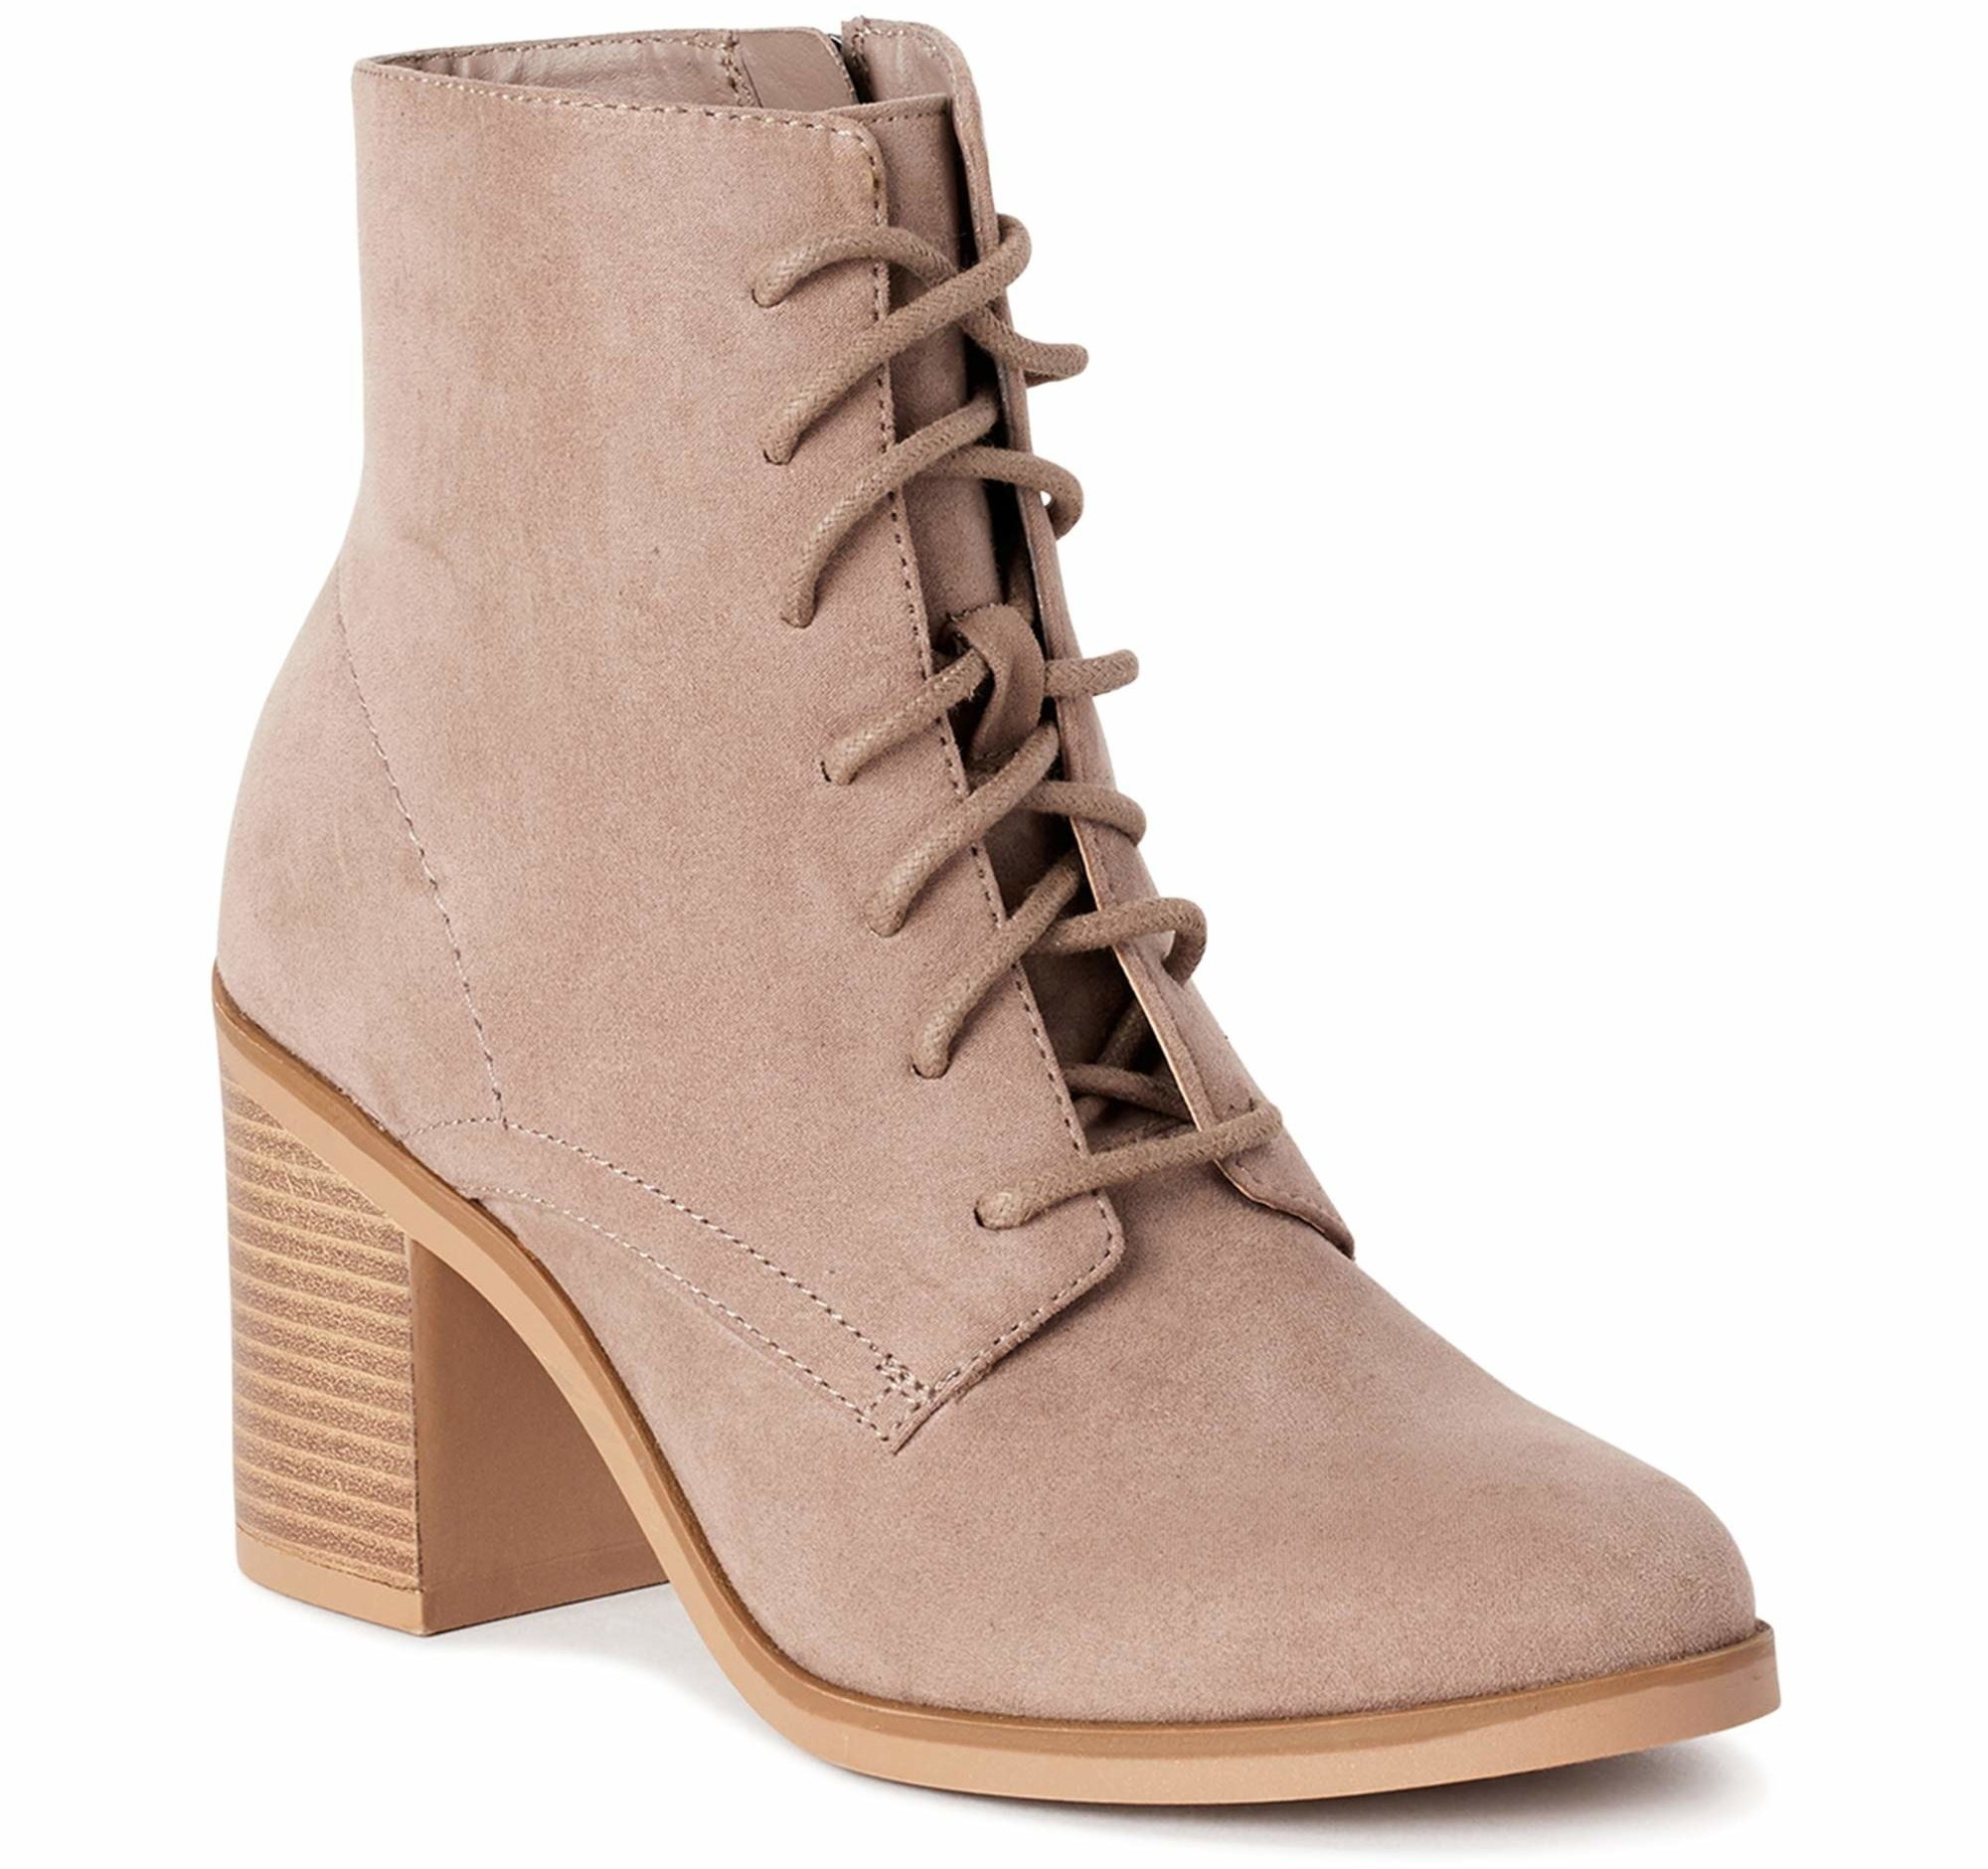 The lace up heel bootie in taupe